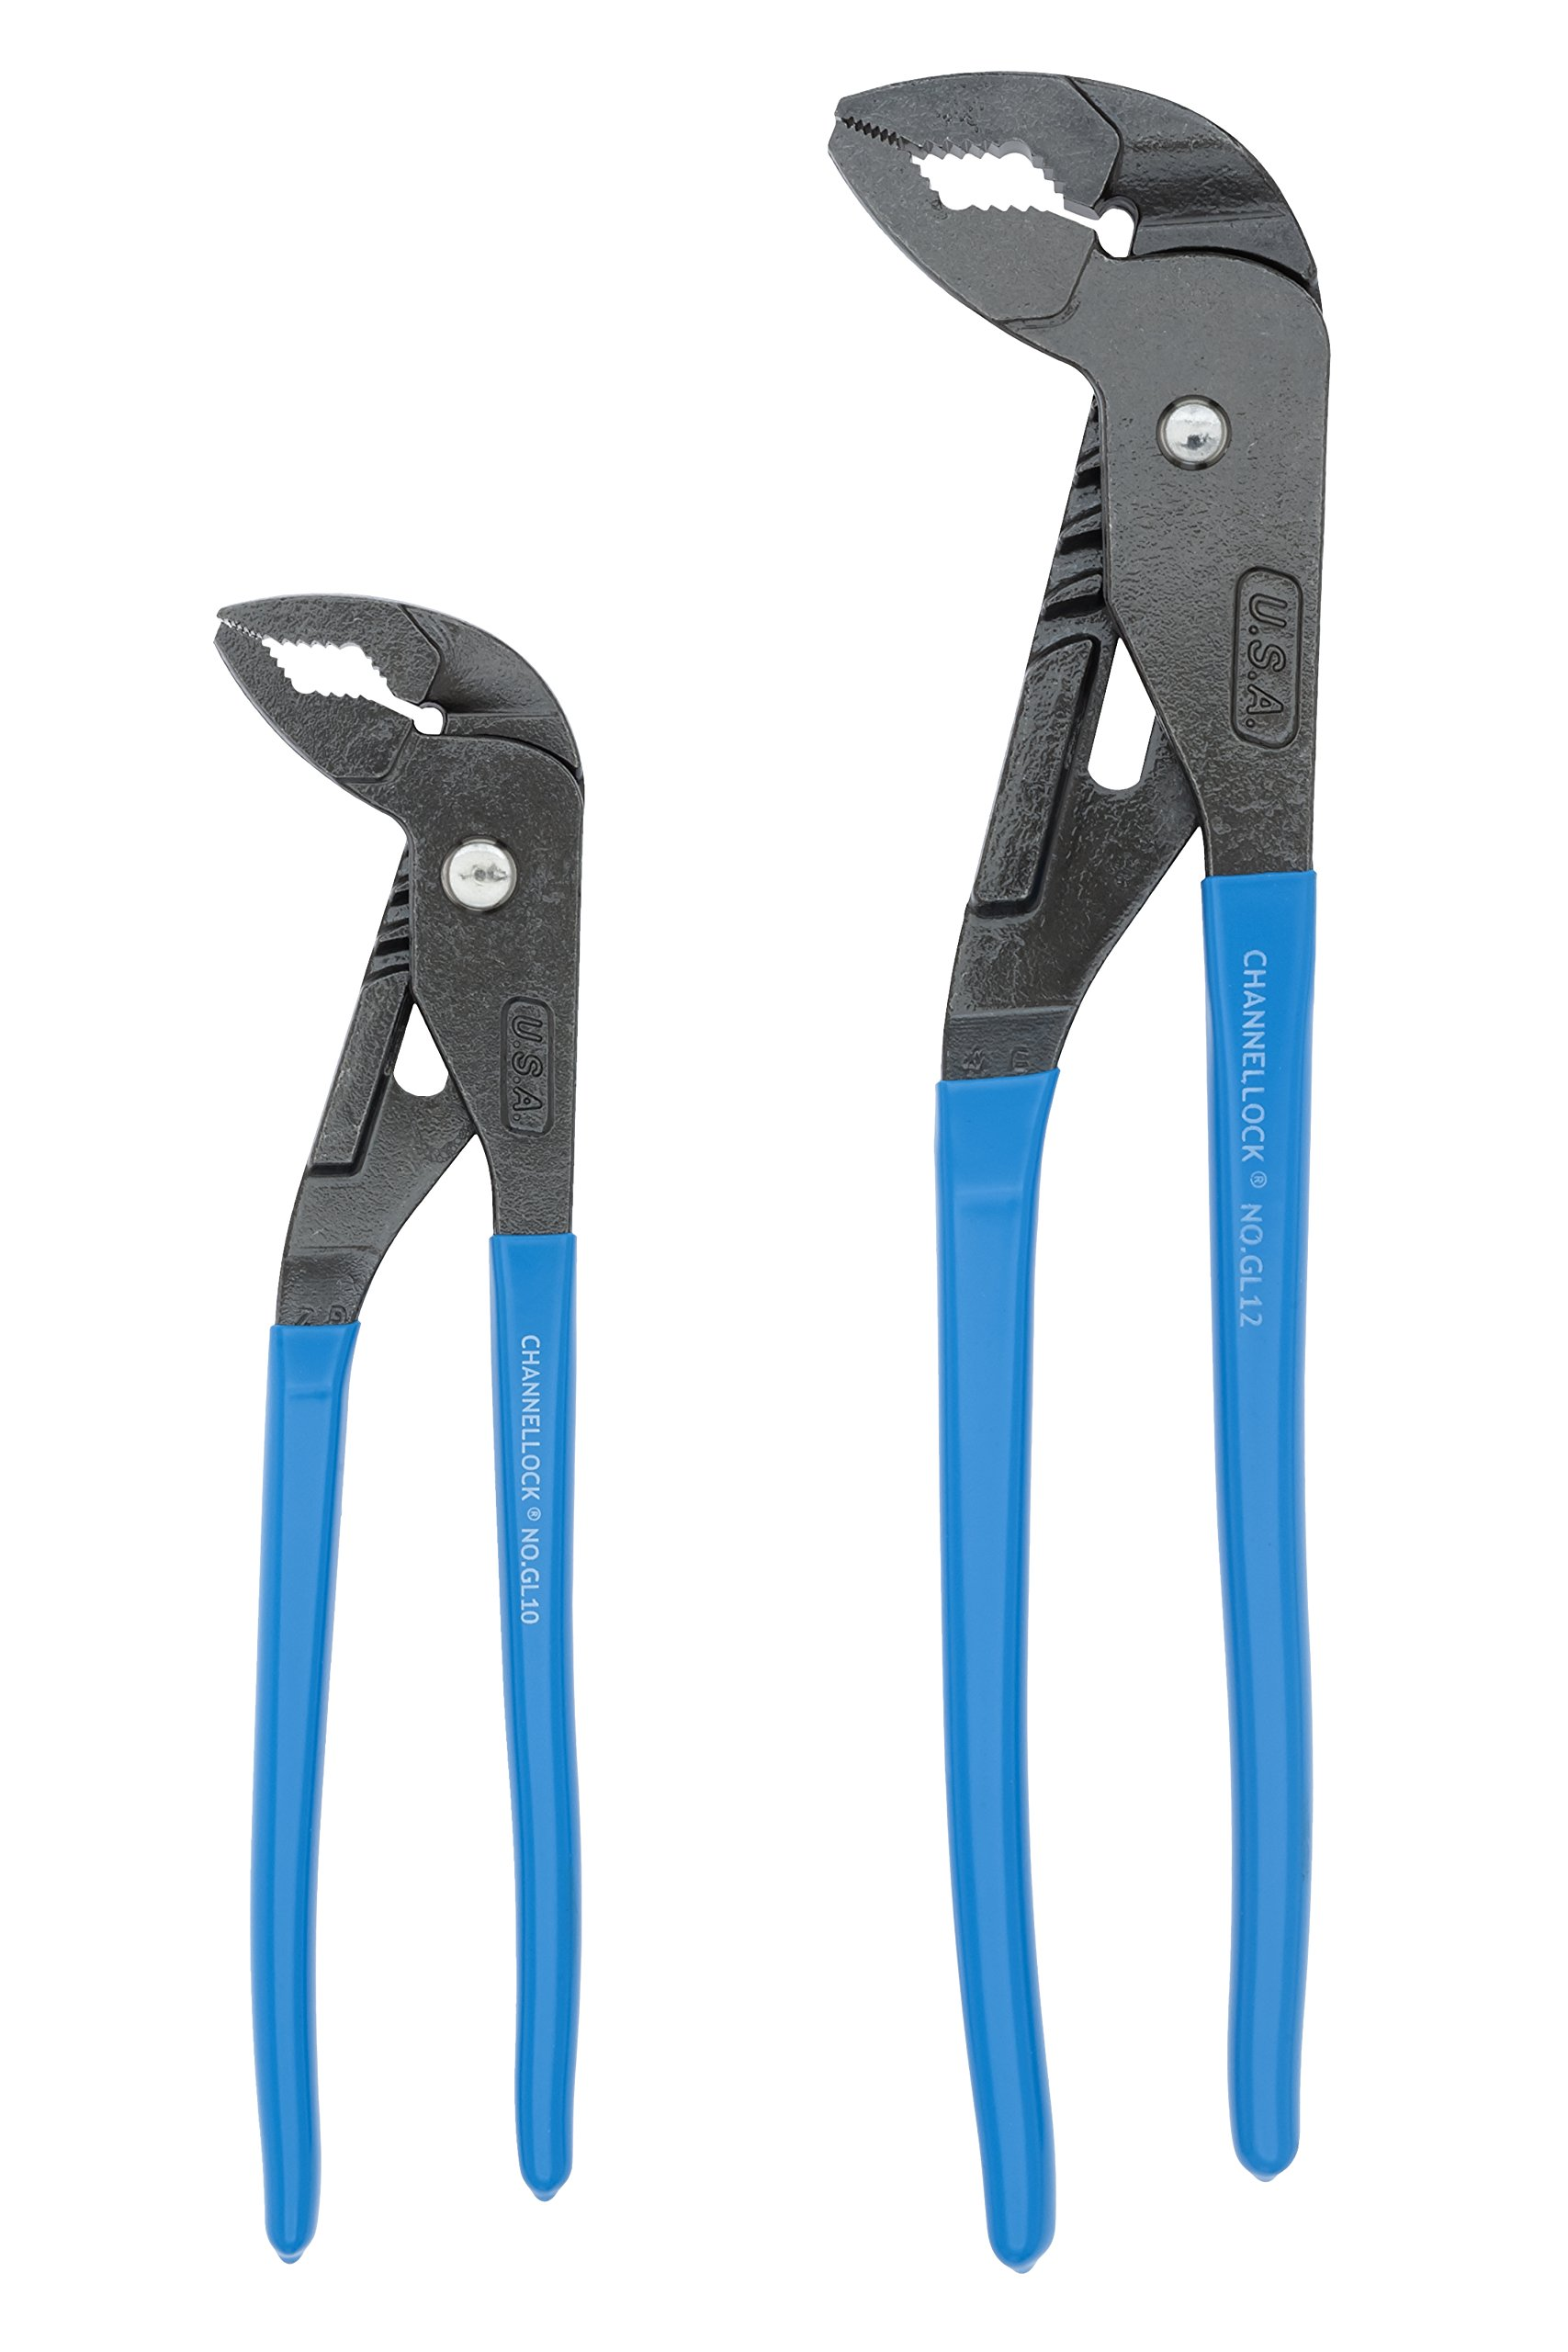 Channellock GLS-1 GRIPLOCK  2 Piece Tongue and Groove Pliers Set - 9.5, 12.5-Inch | Ergonomic V-JAW Groove Joint | Laser Heat-Treated Angled Self Gripping Teeth| Forged from High Carbon Steel | Made in USA by Channellock